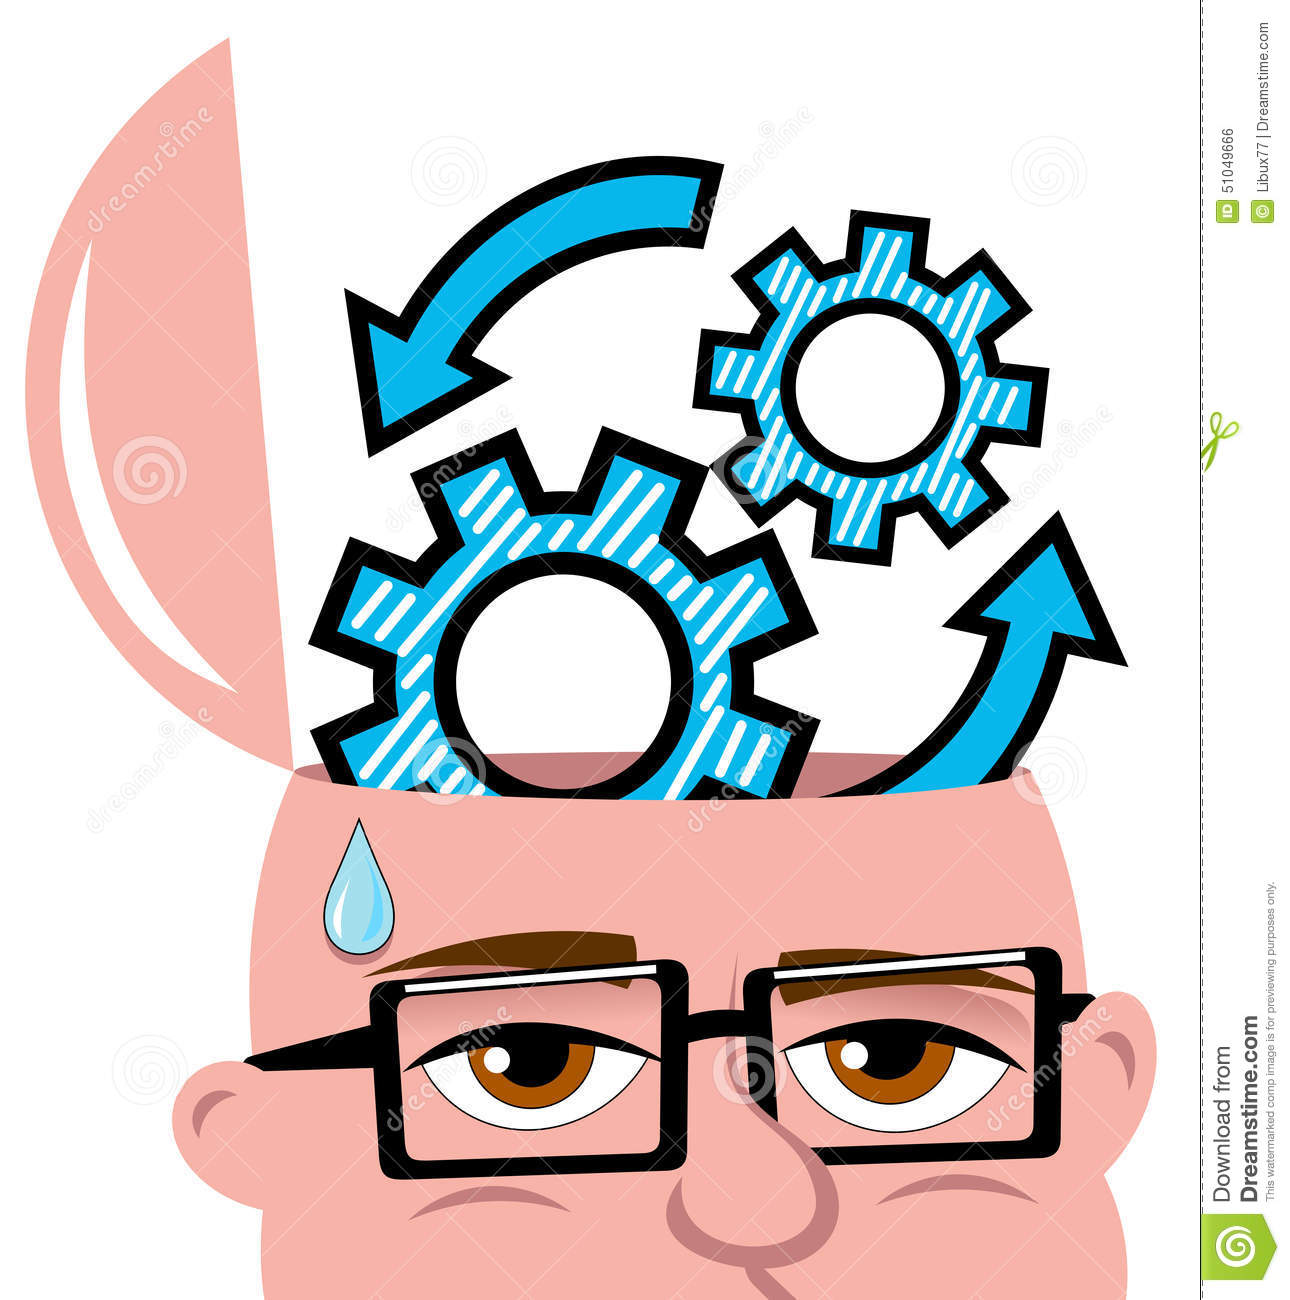 Man Thinking Idea Open Minded Gears Isolated Stock Vector - Image ...